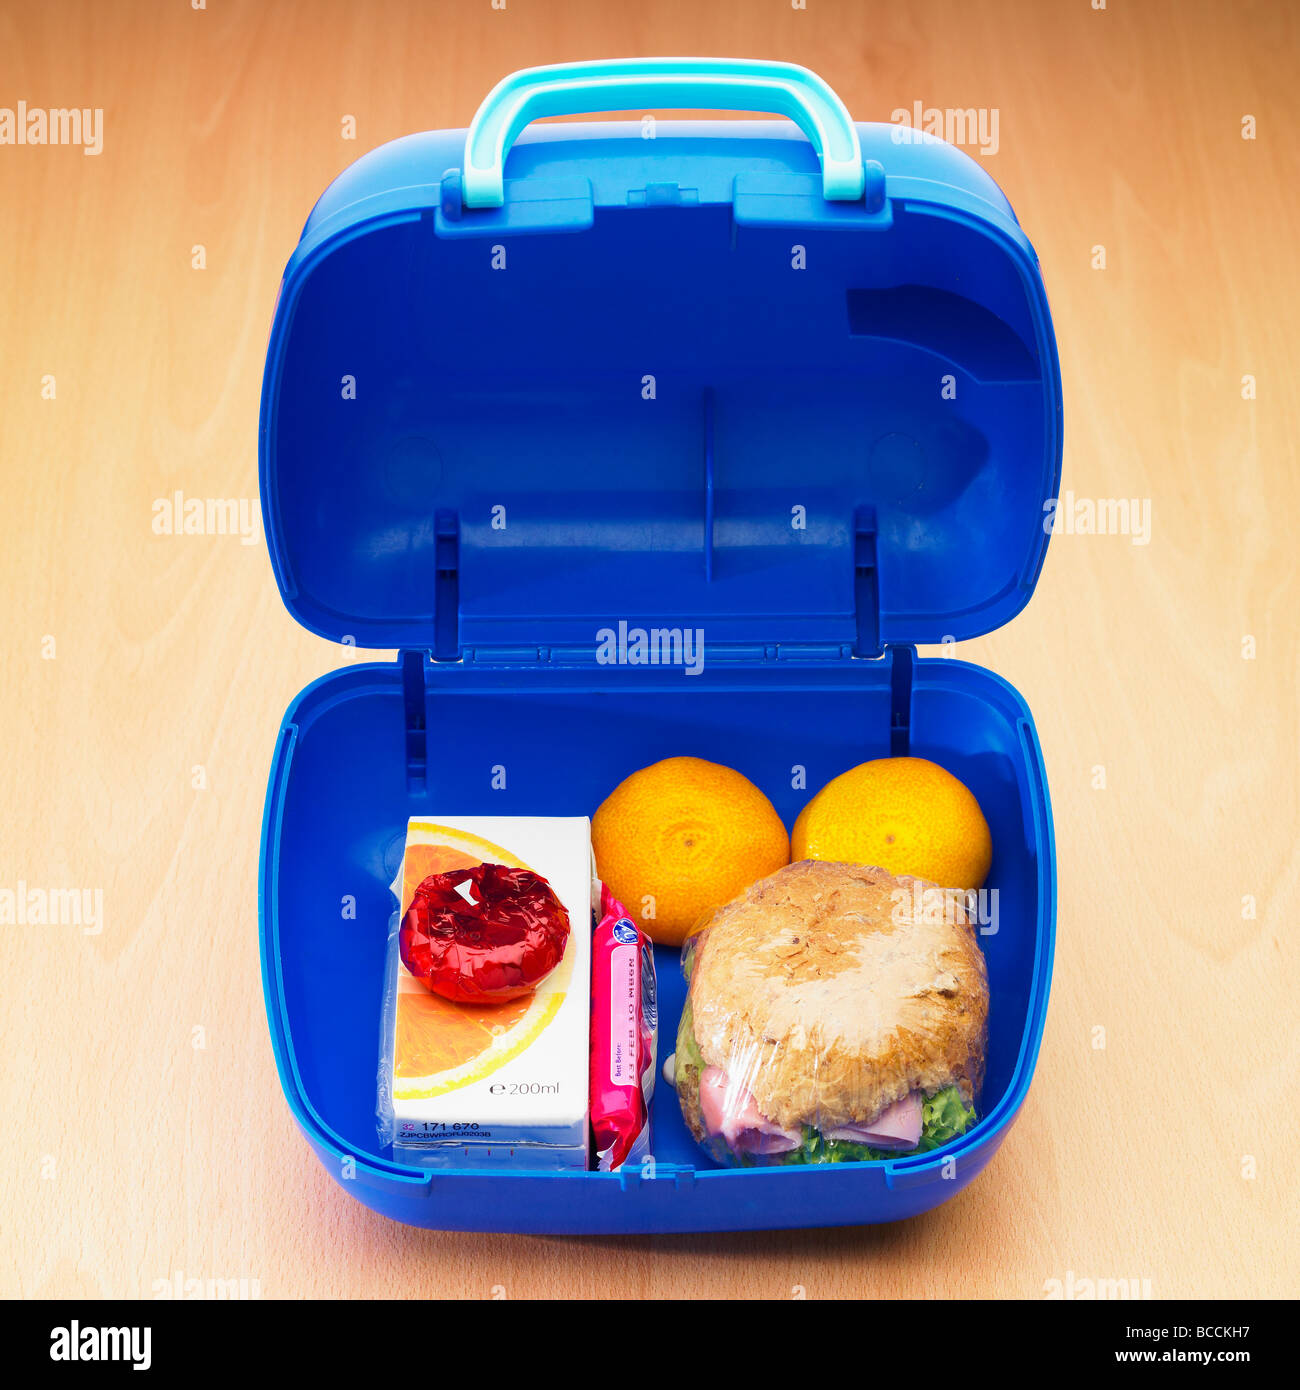 Healthy childrens school lunch box with wholemeal roll, satsumas, mini light cheese, orange juice and biscuit. - Stock Image